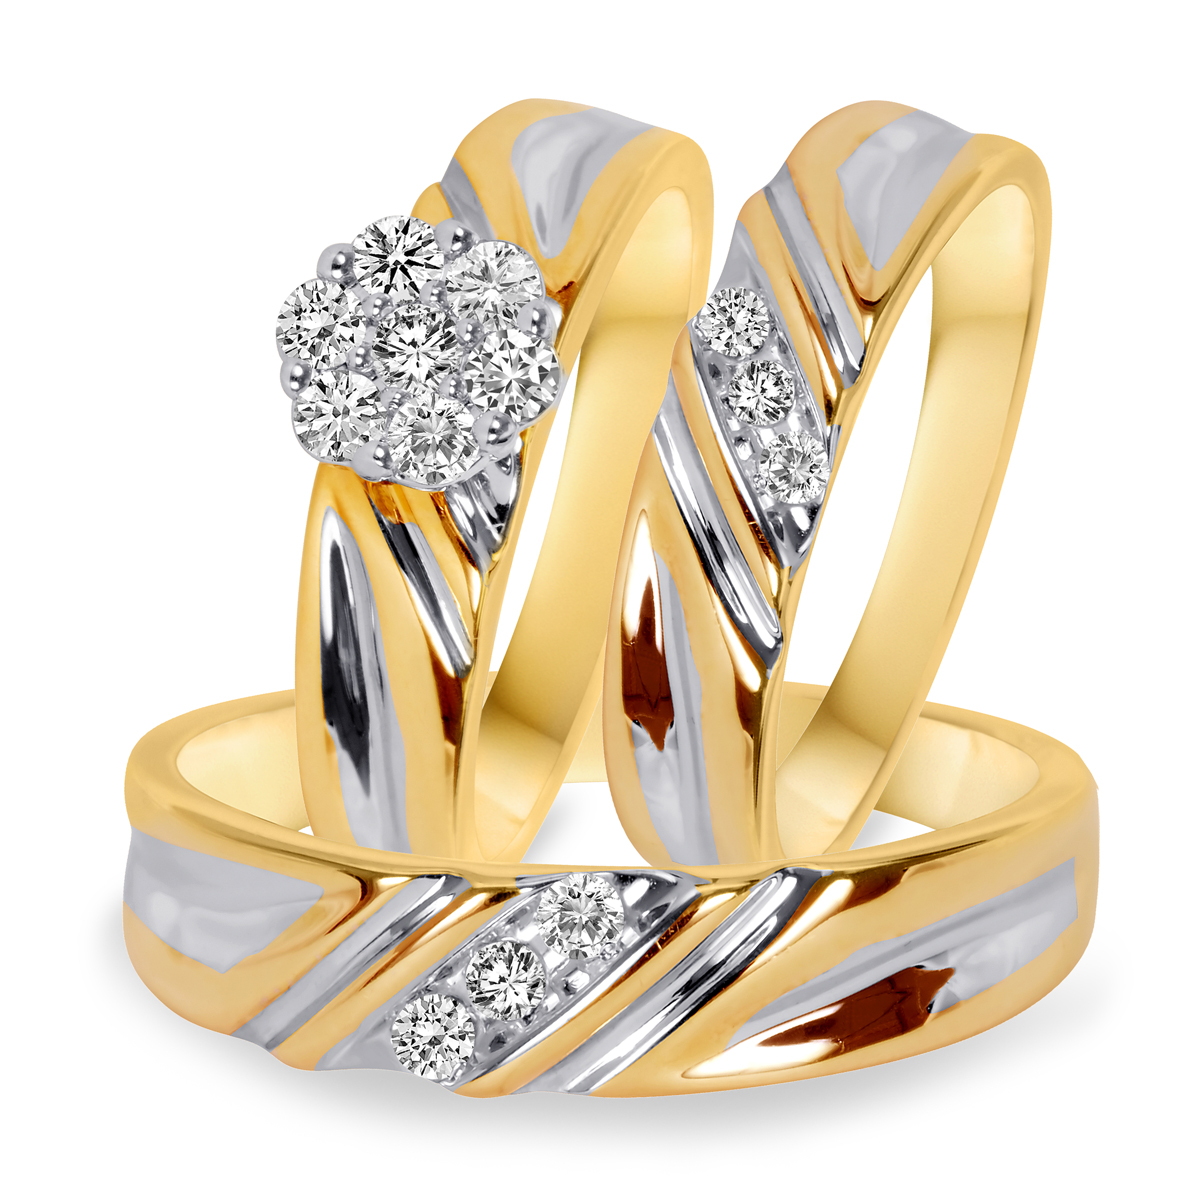 38 carat tw diamond trio matching wedding ring set 10k yellow gold my trio rings bt508y10k - Gold Wedding Ring Sets